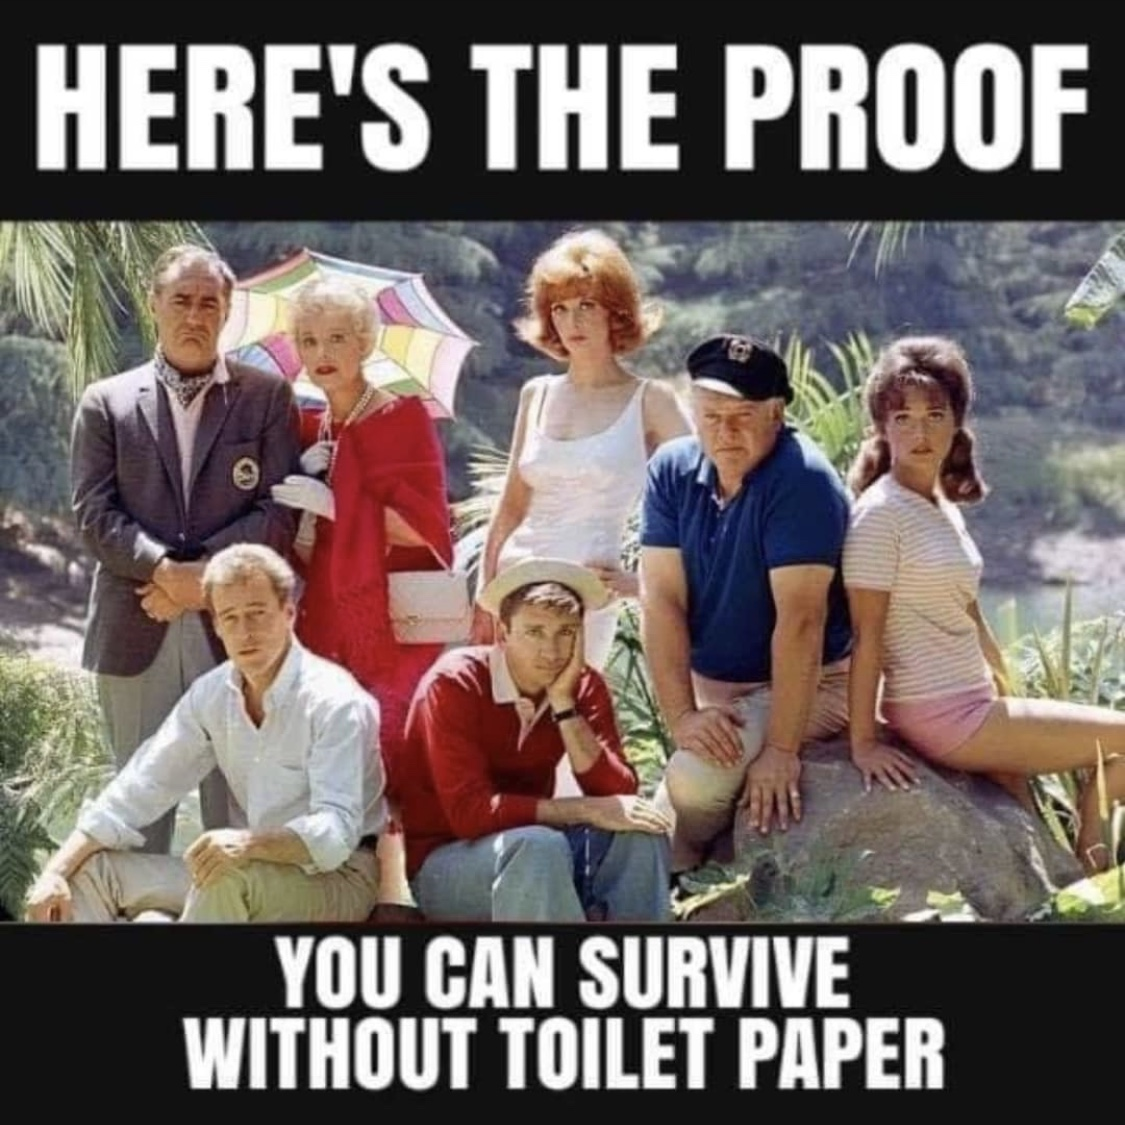 Heres the proof you can survive without toilet paper